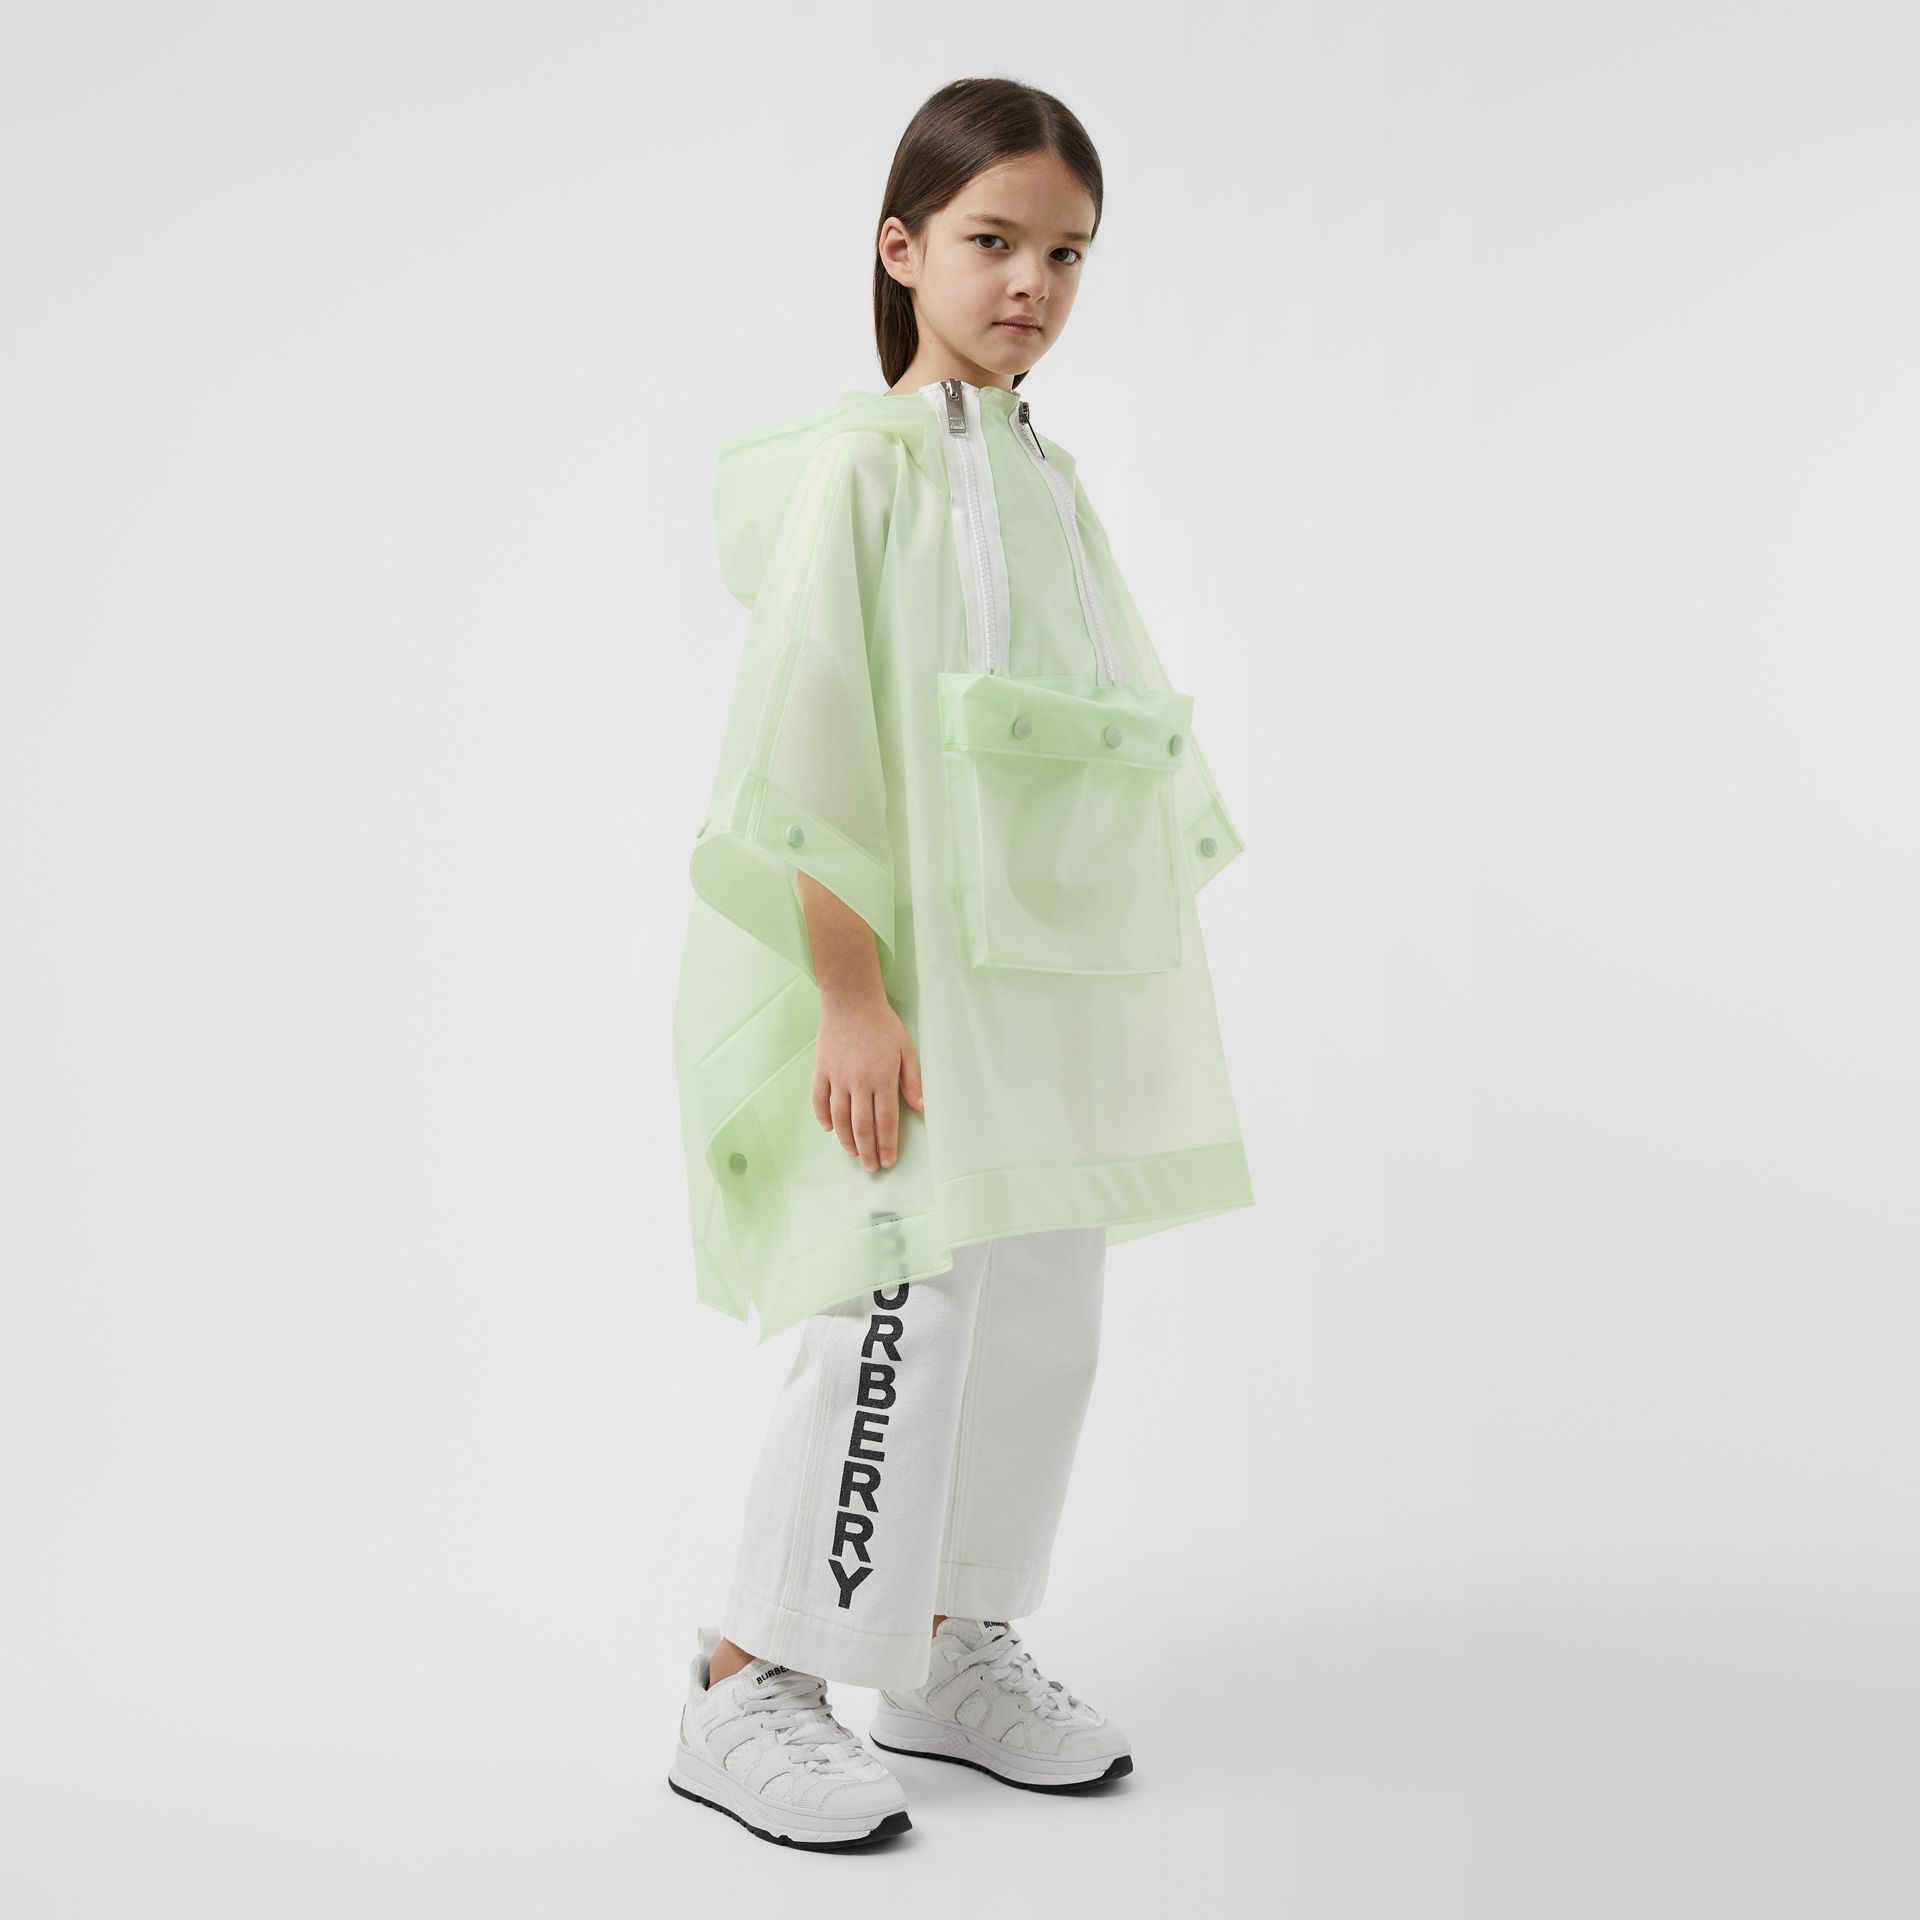 Logo Print Showerproof Hooded Poncho in Pistachio   Burberry - gallery image 2